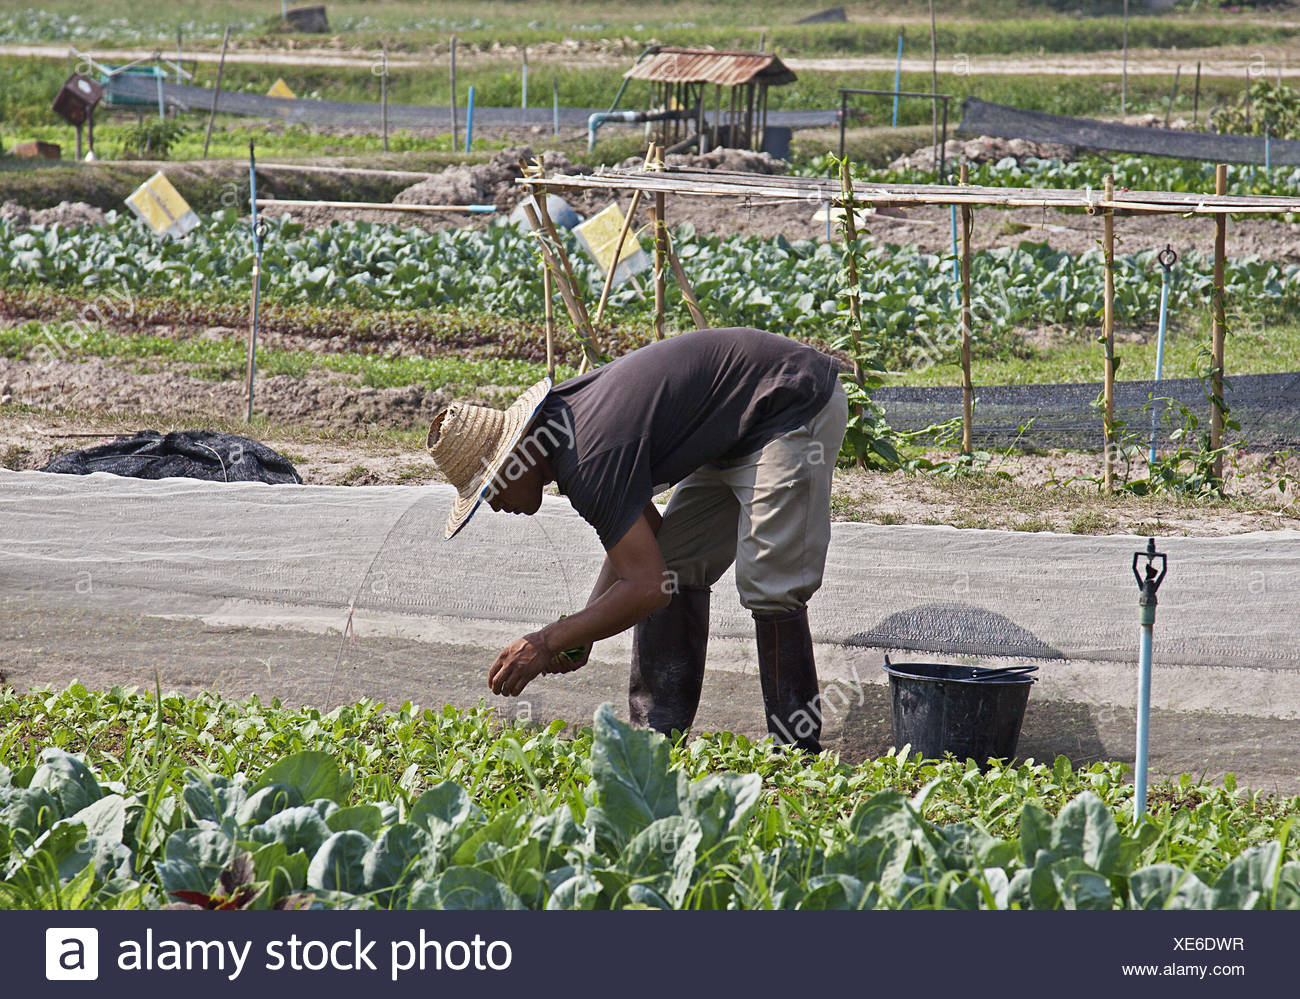 Vegetable field - Stock Image